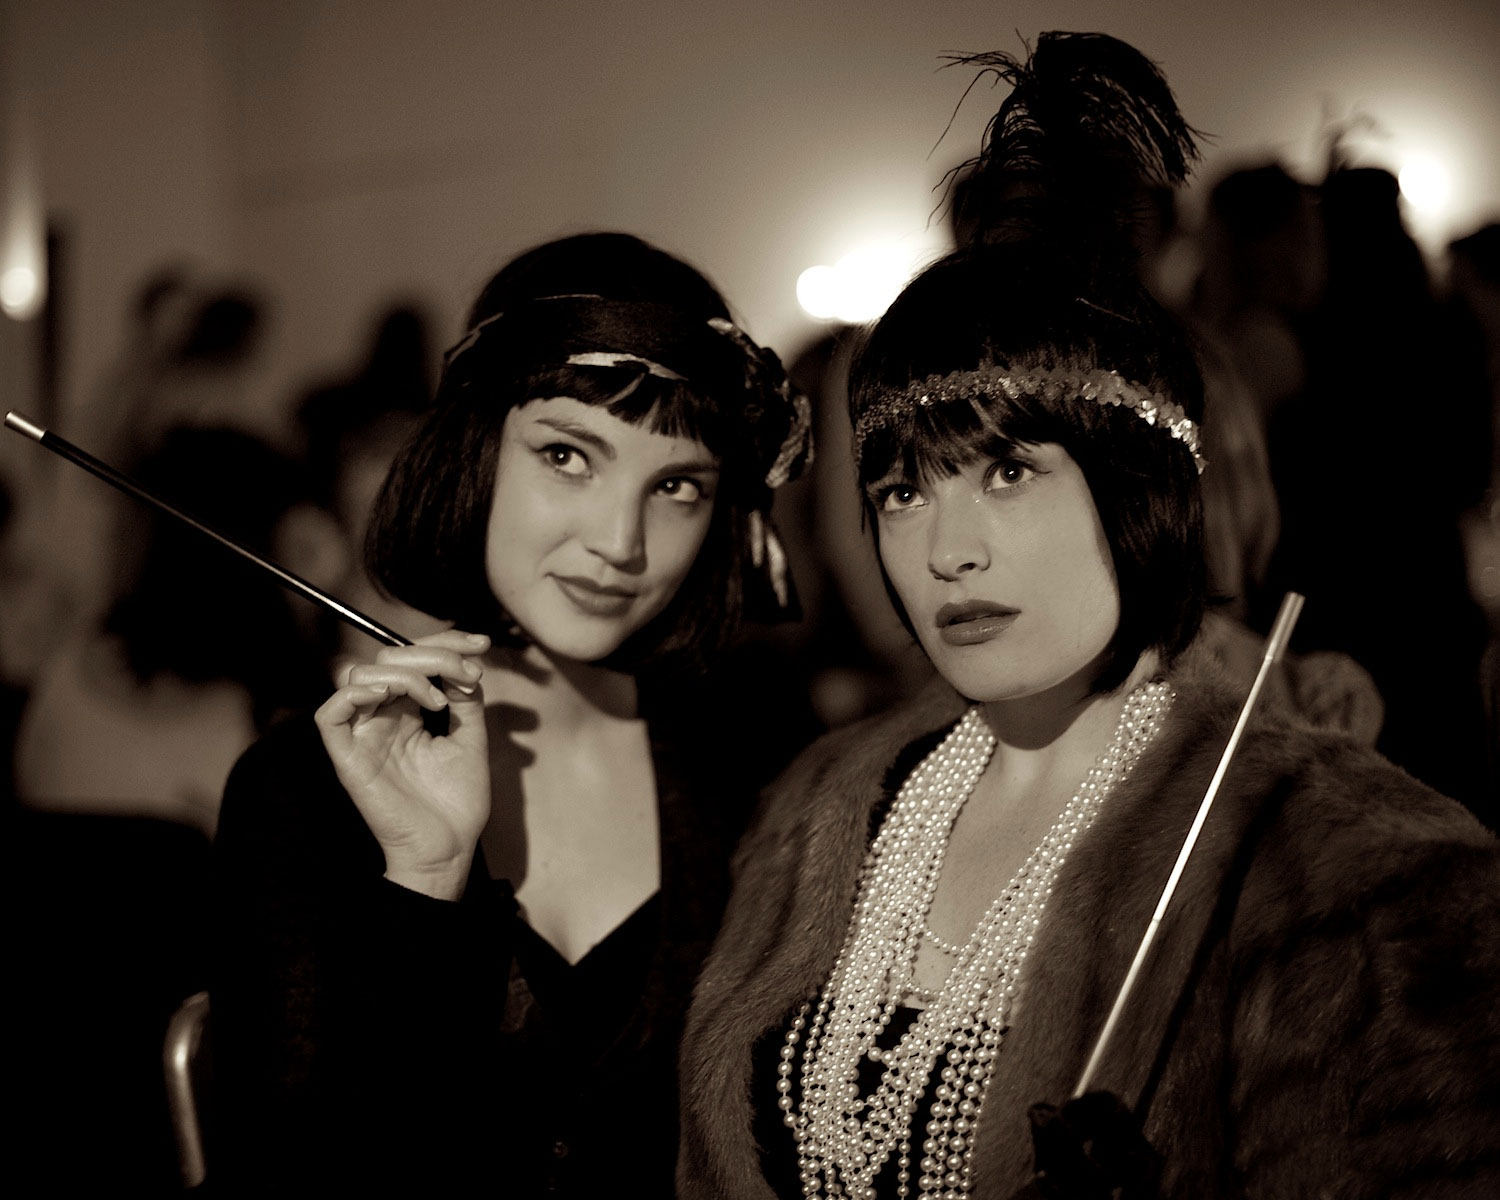 Two flappers with black bobs and long cigarette holders